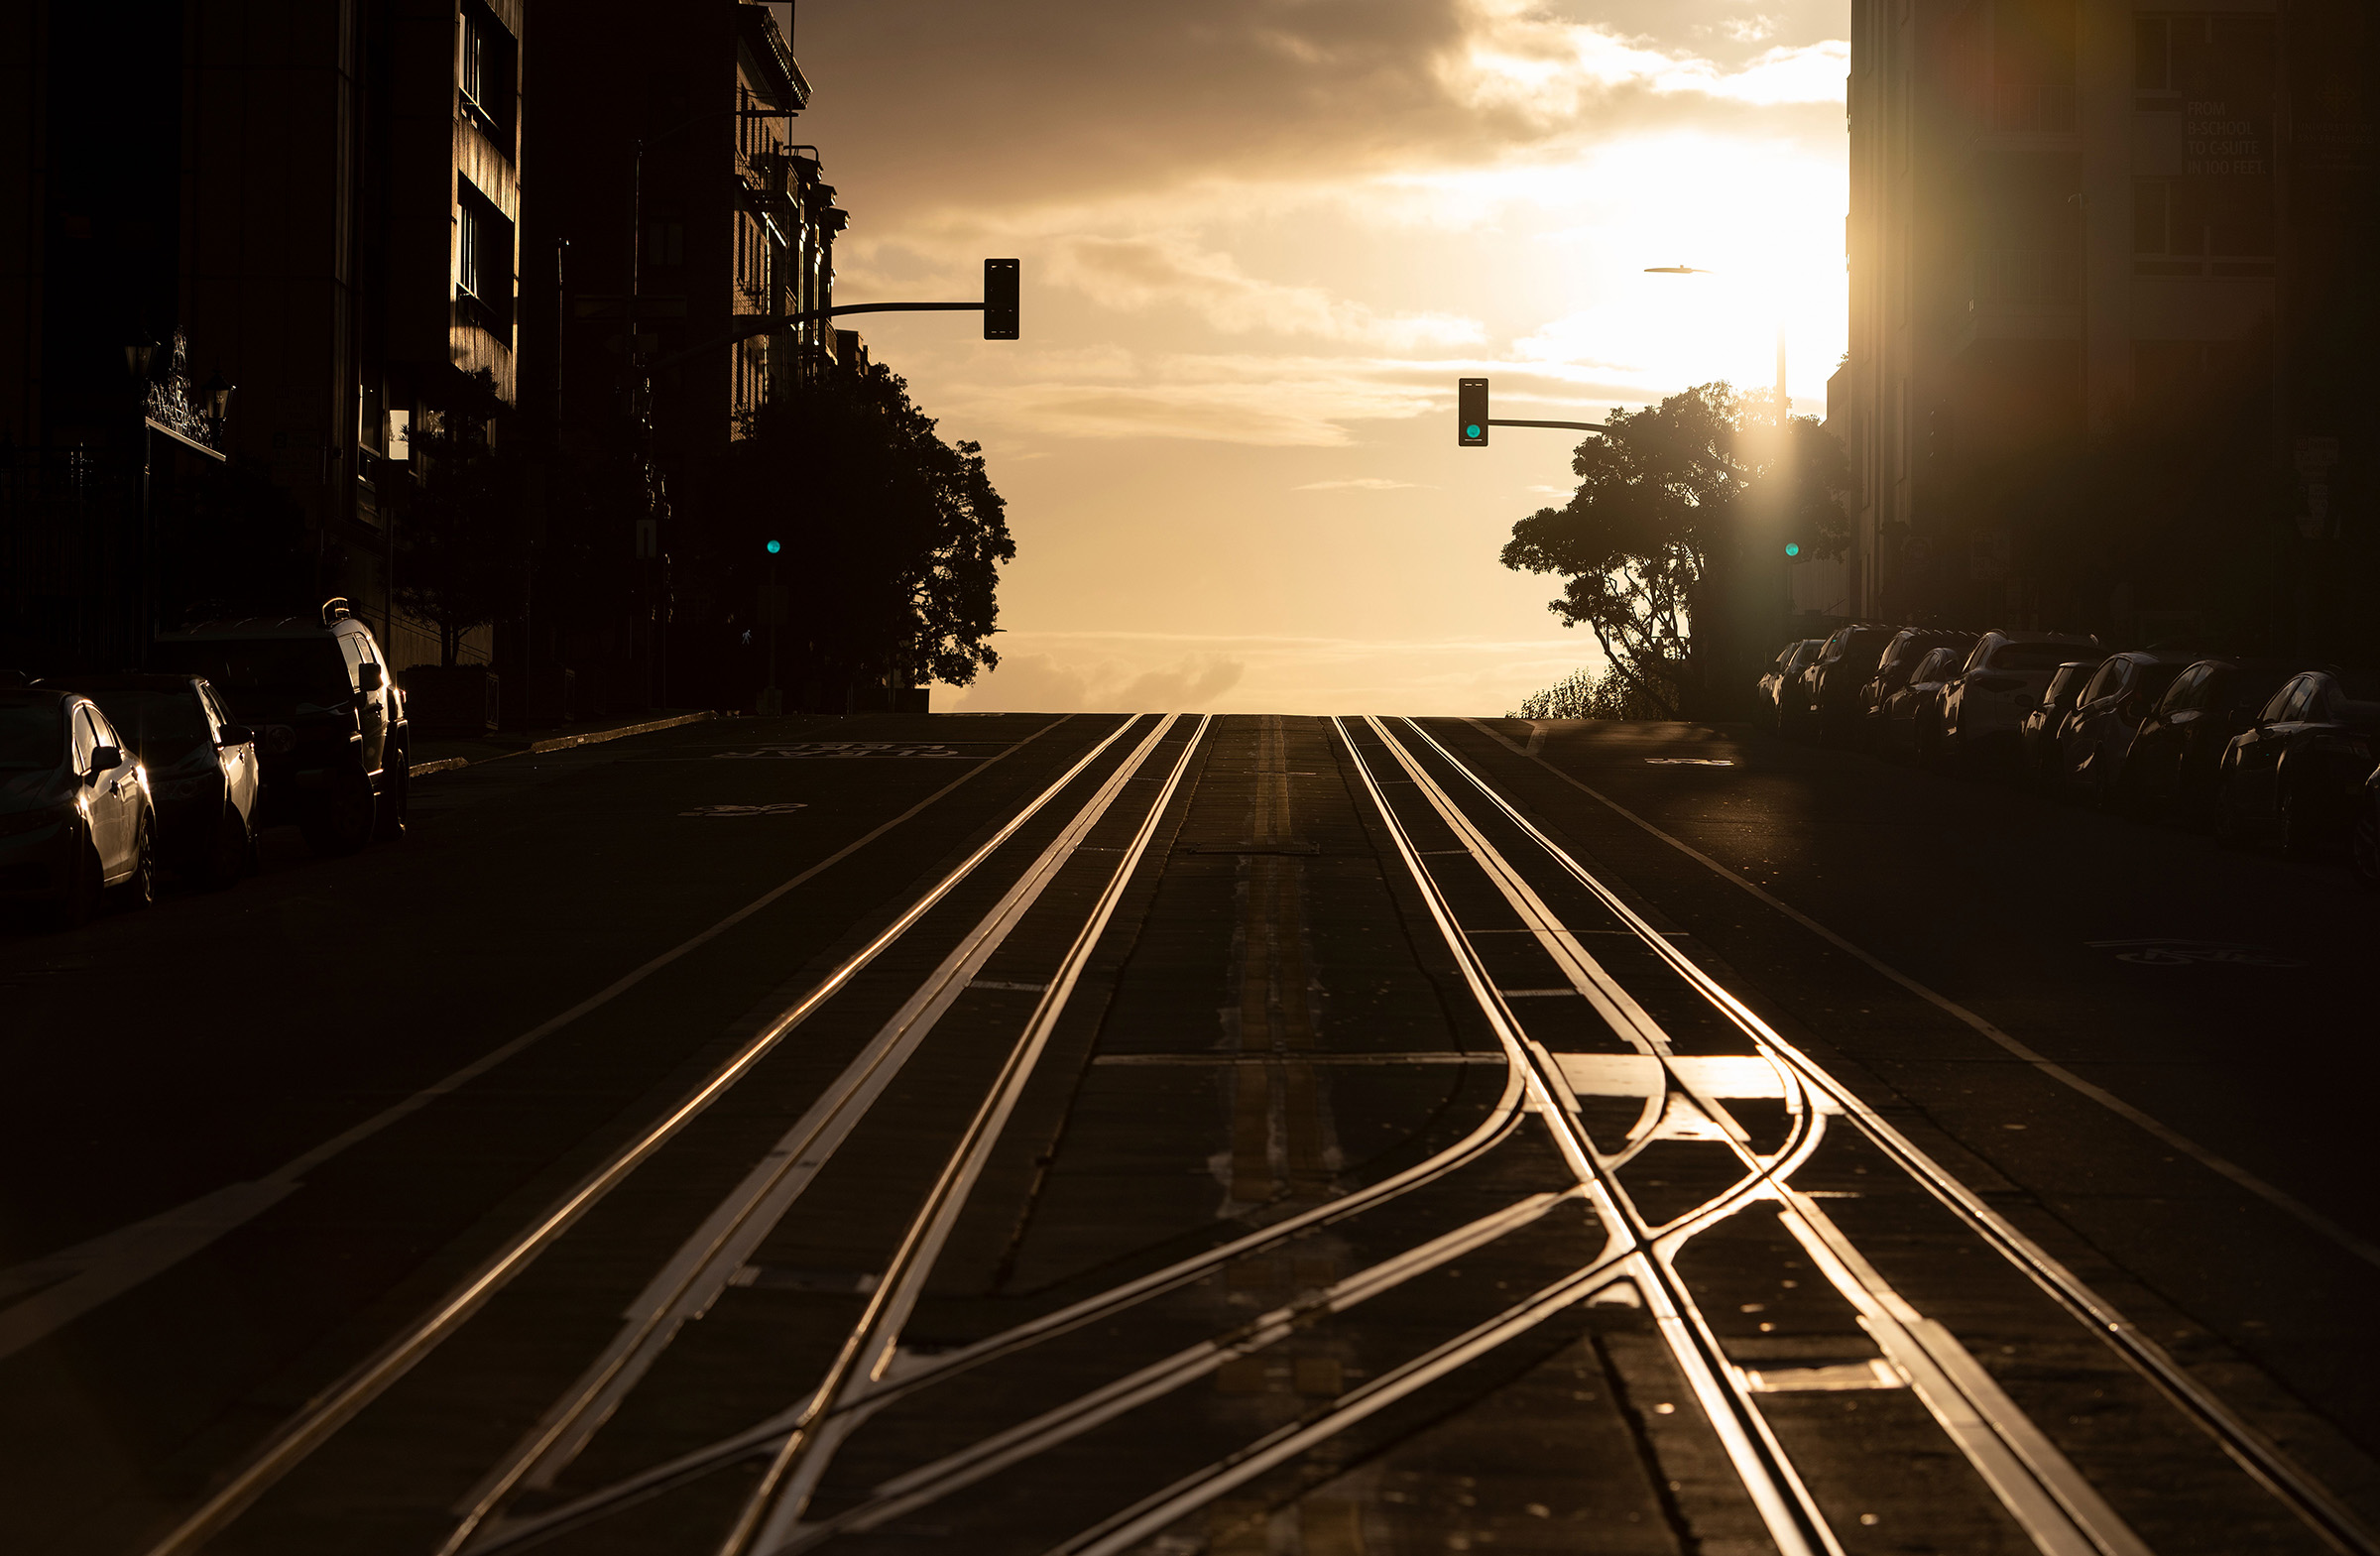 California Street, usually filled with cable cars, is seen empty in San Francisco on March 18, 2020.